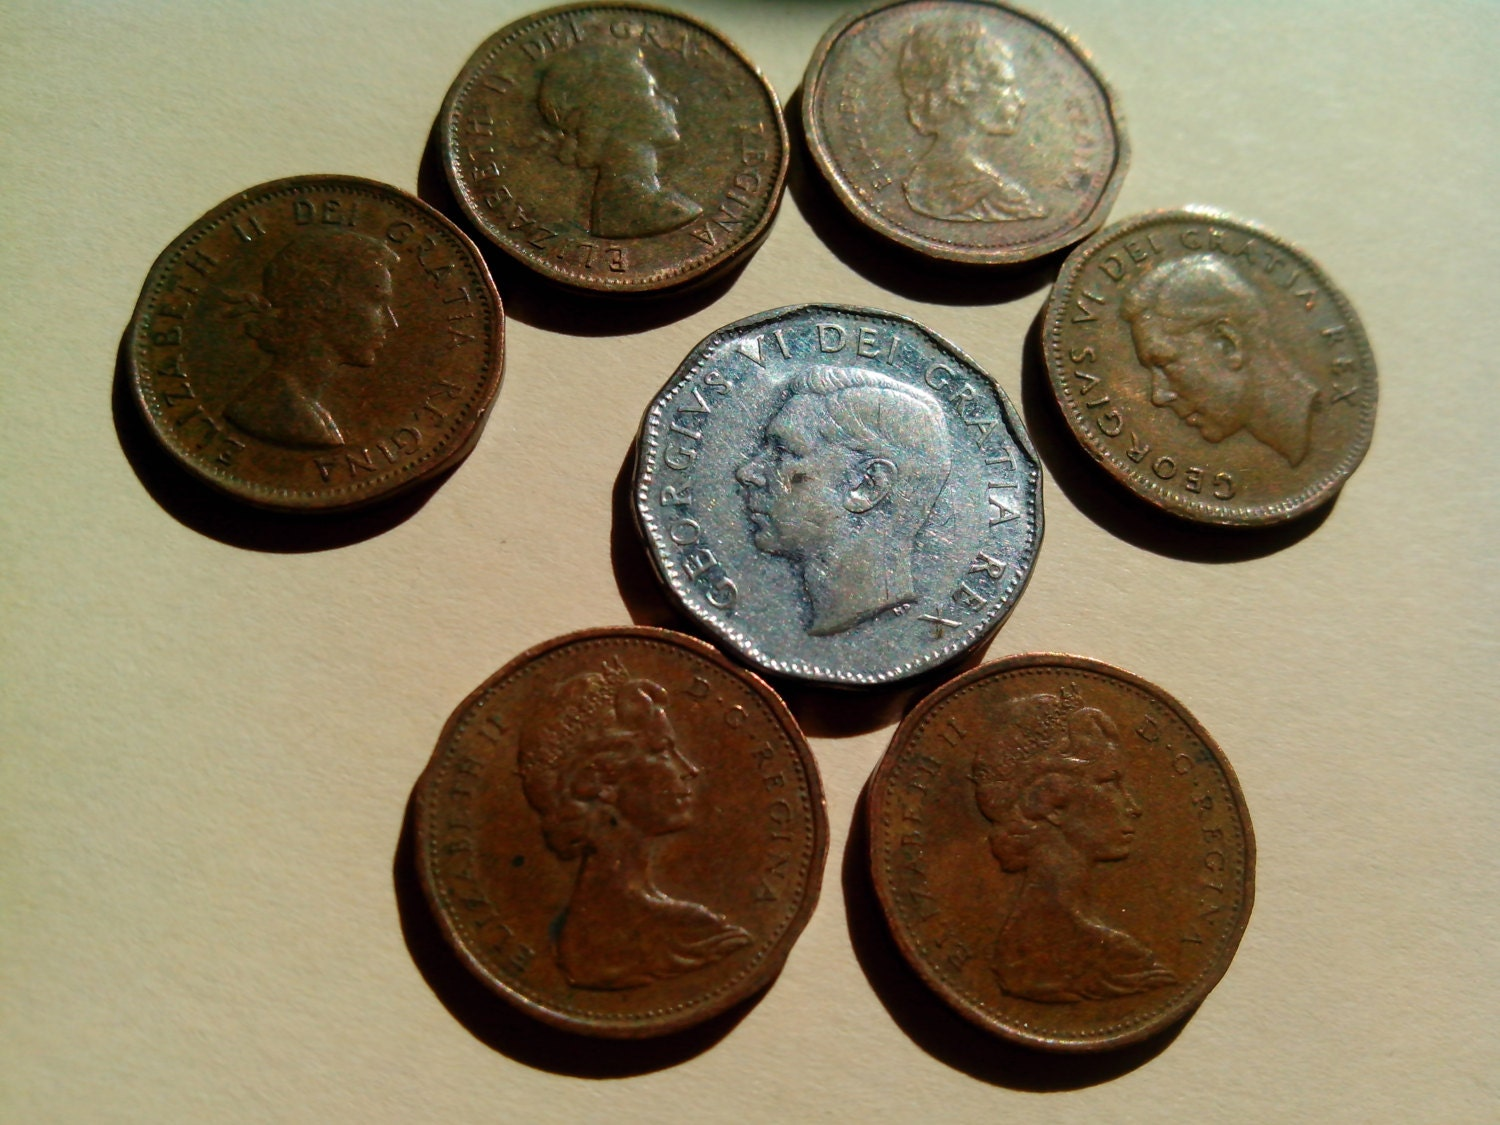 7 Canadian Old Coins 1 Cent Amp 5 Cent 1867 1967 By Holylandshop7